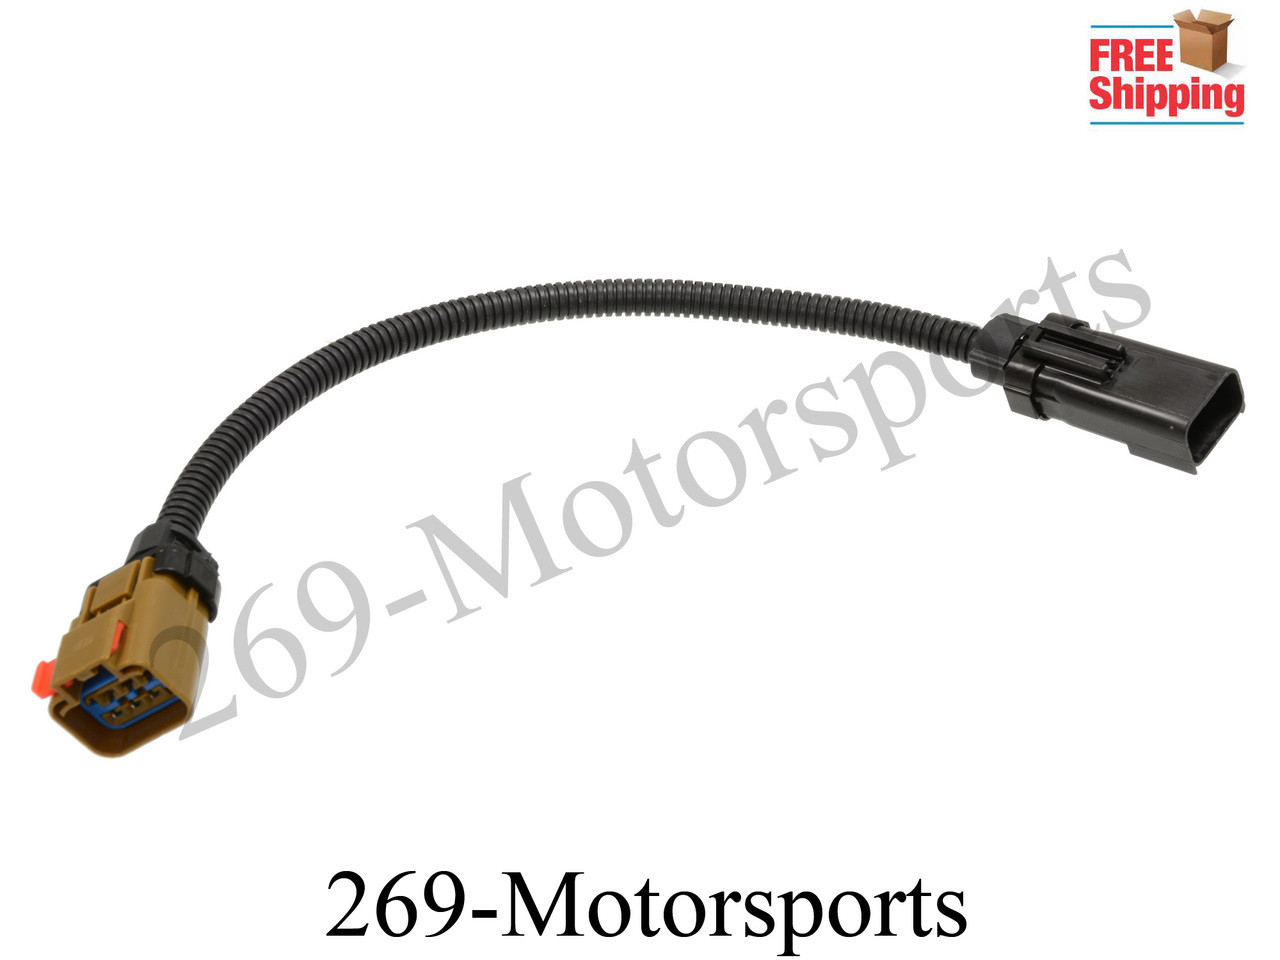 tail light wiring harness lamp connector fits 02 03 dodge ram mopar Dodge Ram Wiring Harness Connectors